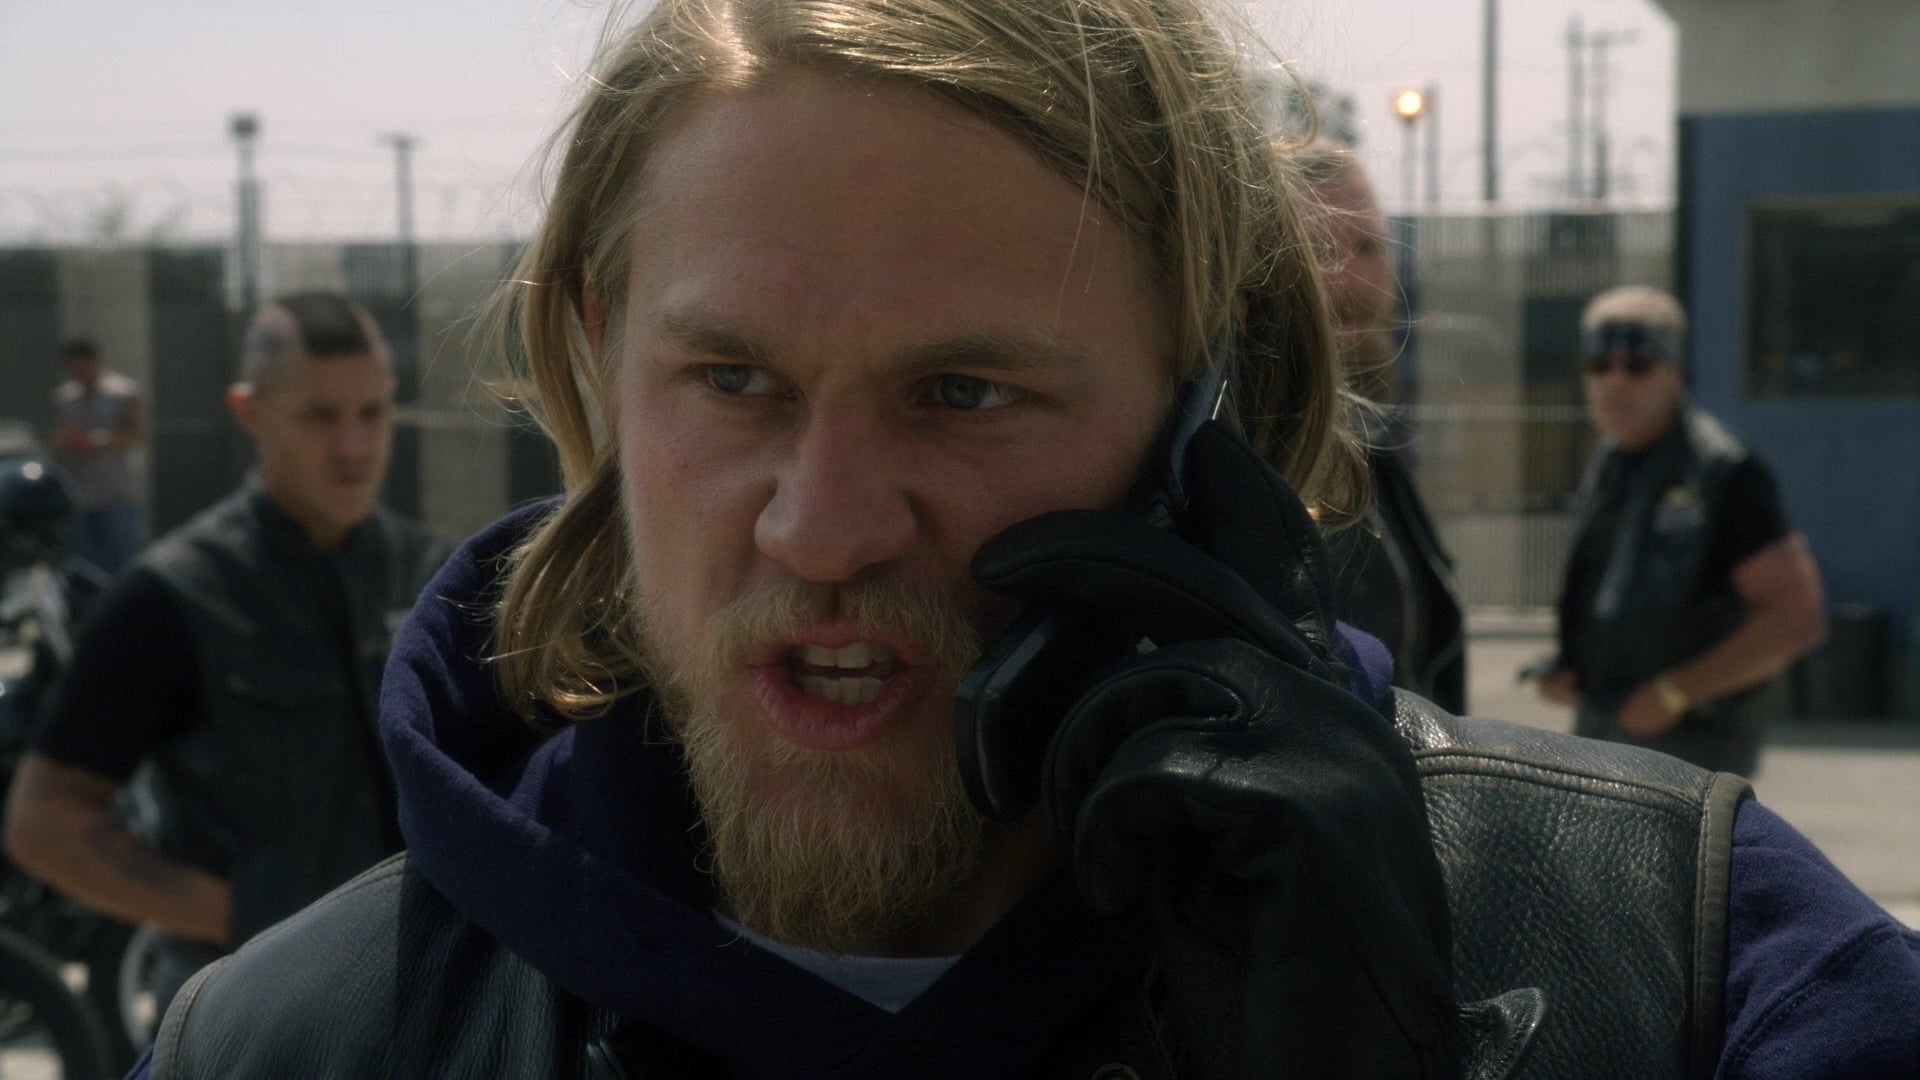 Sons of Anarchy Saison 5 Episode 13 streaming vf Sons of